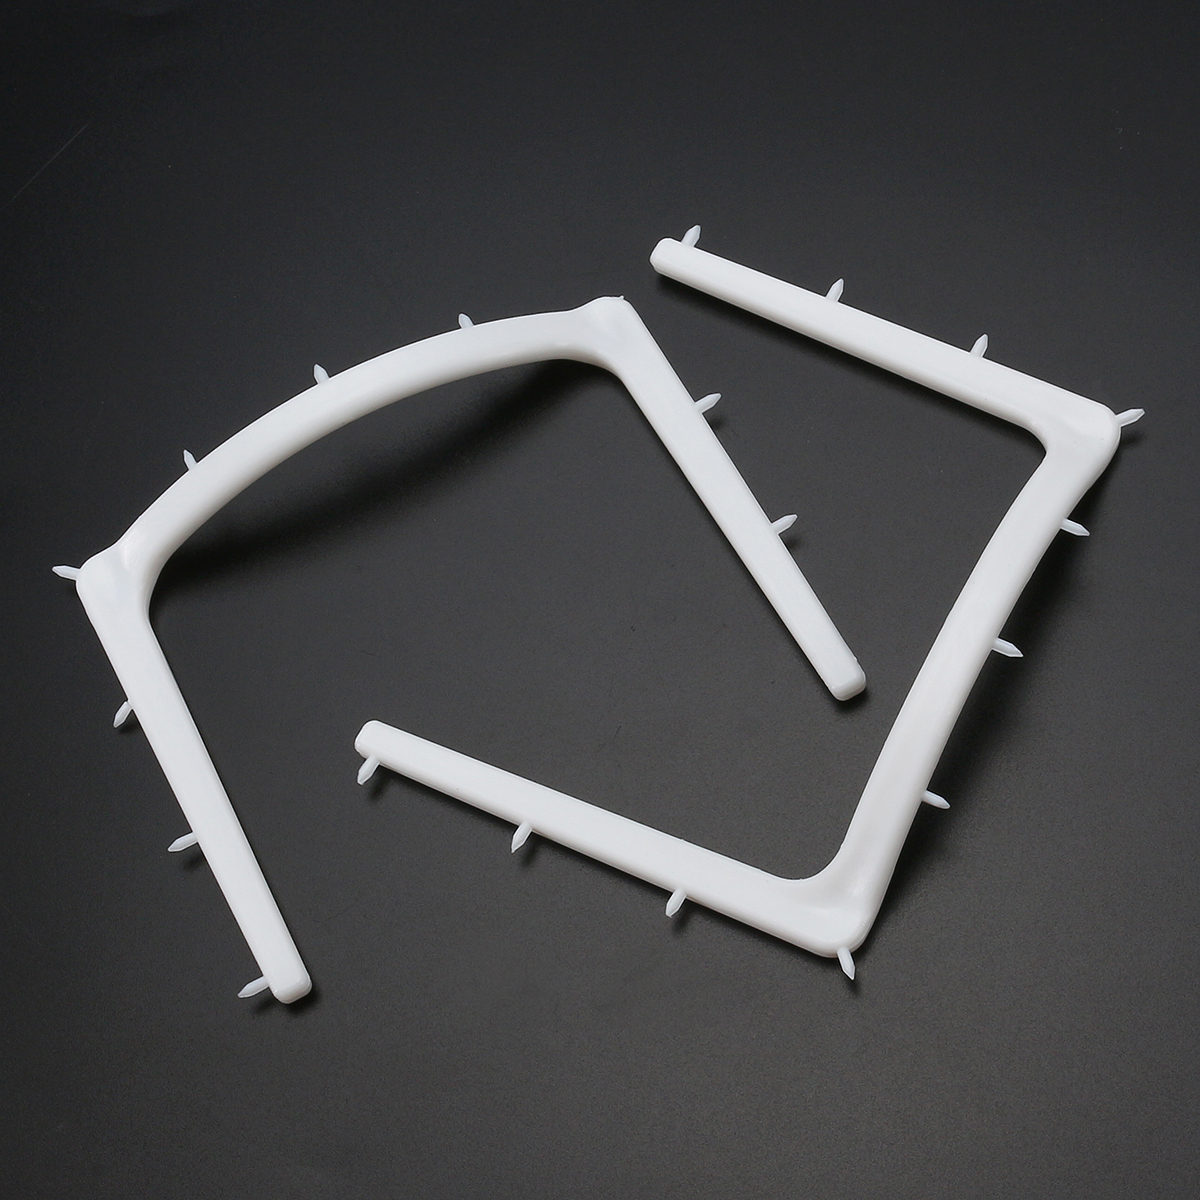 5Pcs Disposable Rubber Dam Holder Durable Teeth Support